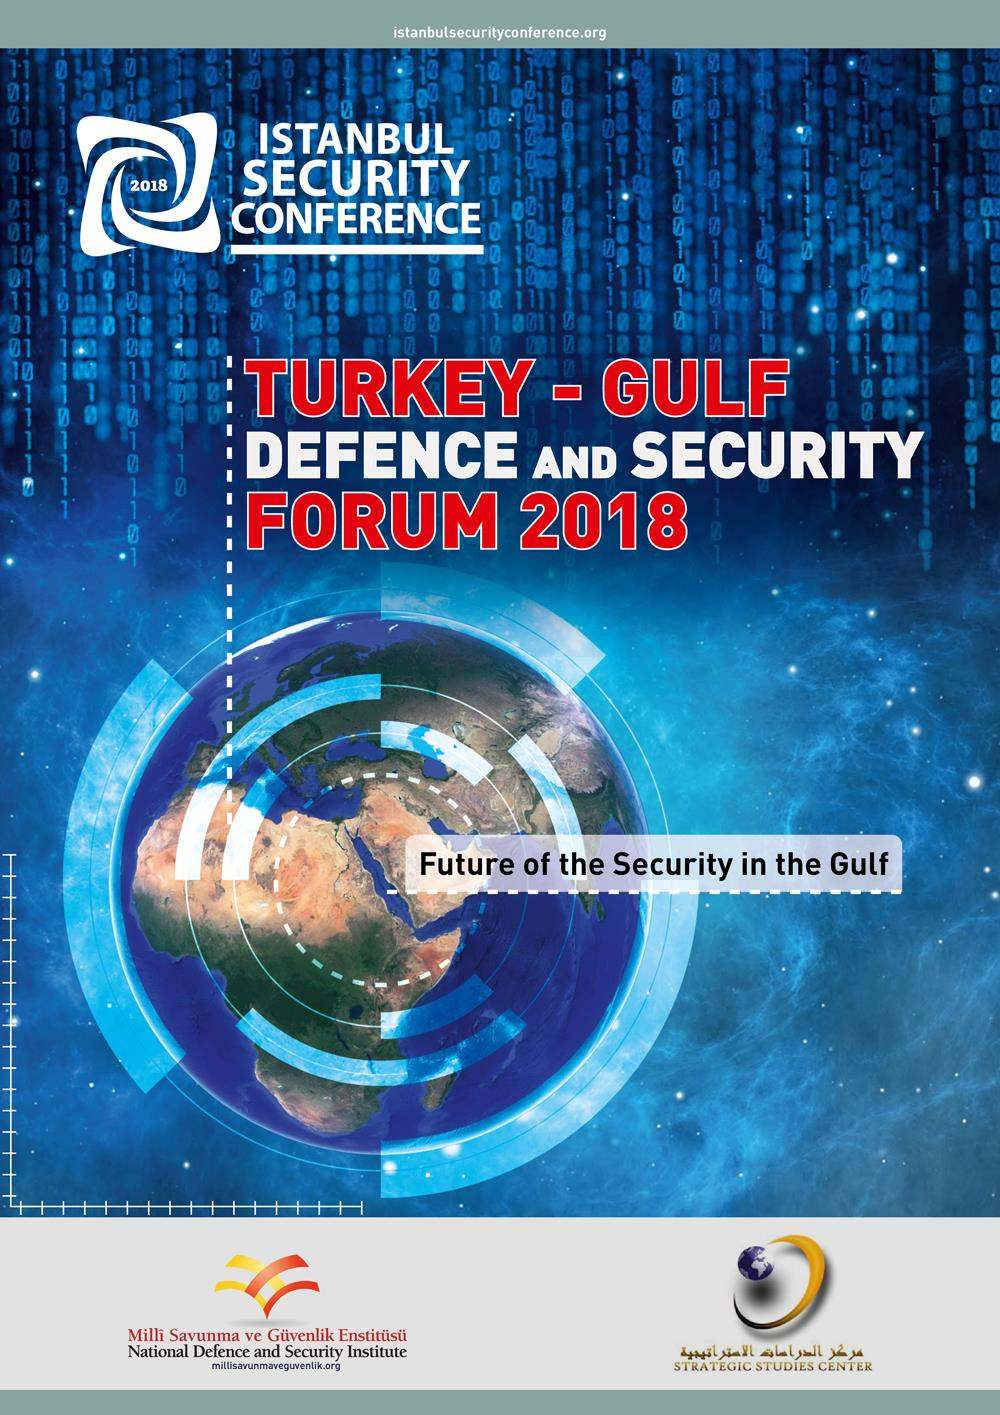 Turkey - Gulf Defence and Security Forum 2018